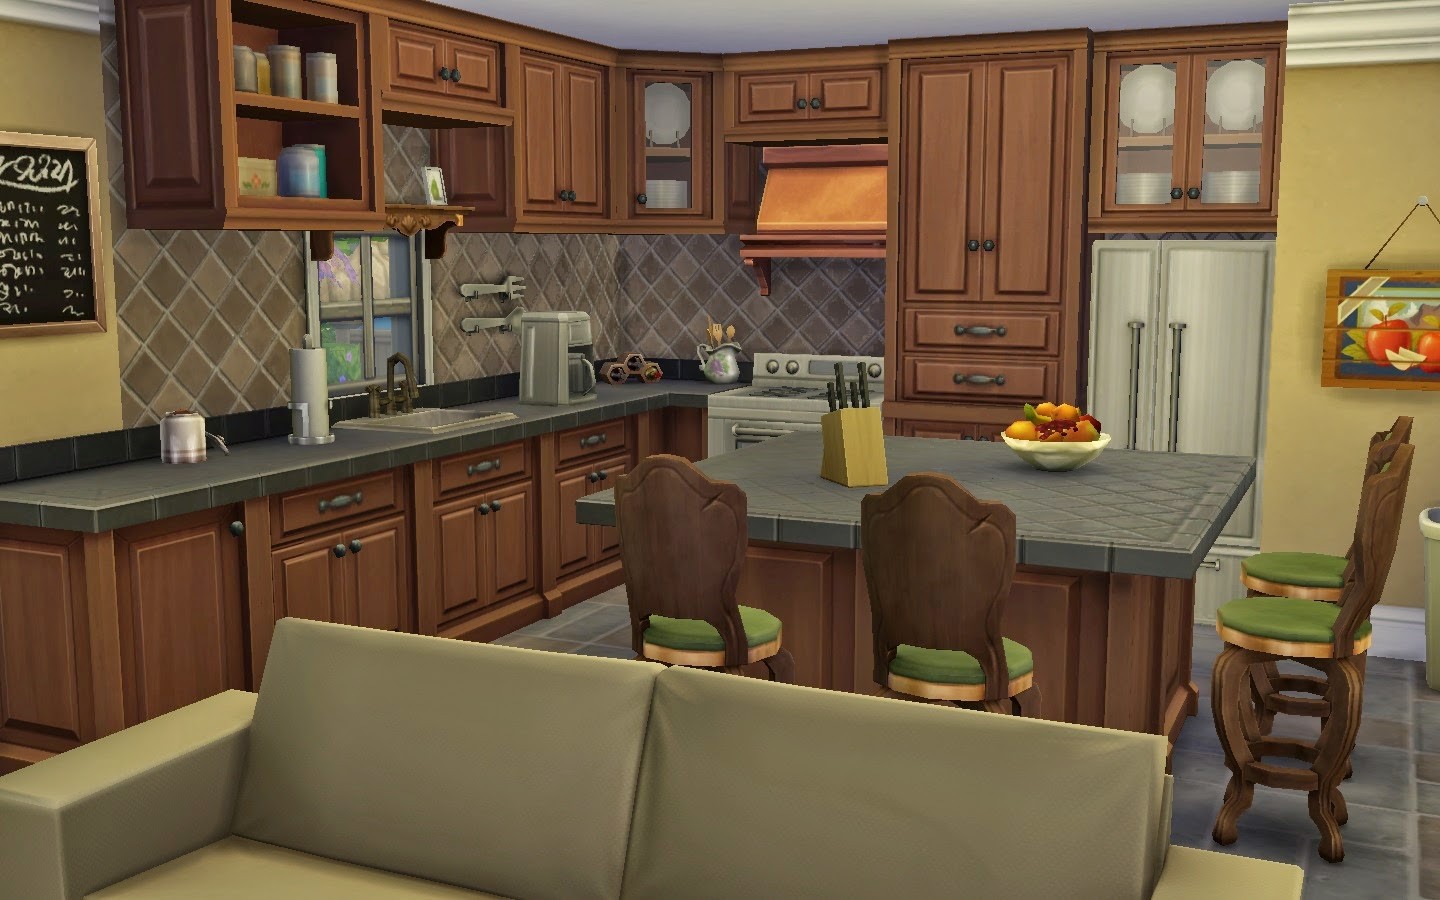 Sims Kitchen Mod The Sims Looking For Sims 4 Kitchen Conversion For Ts3